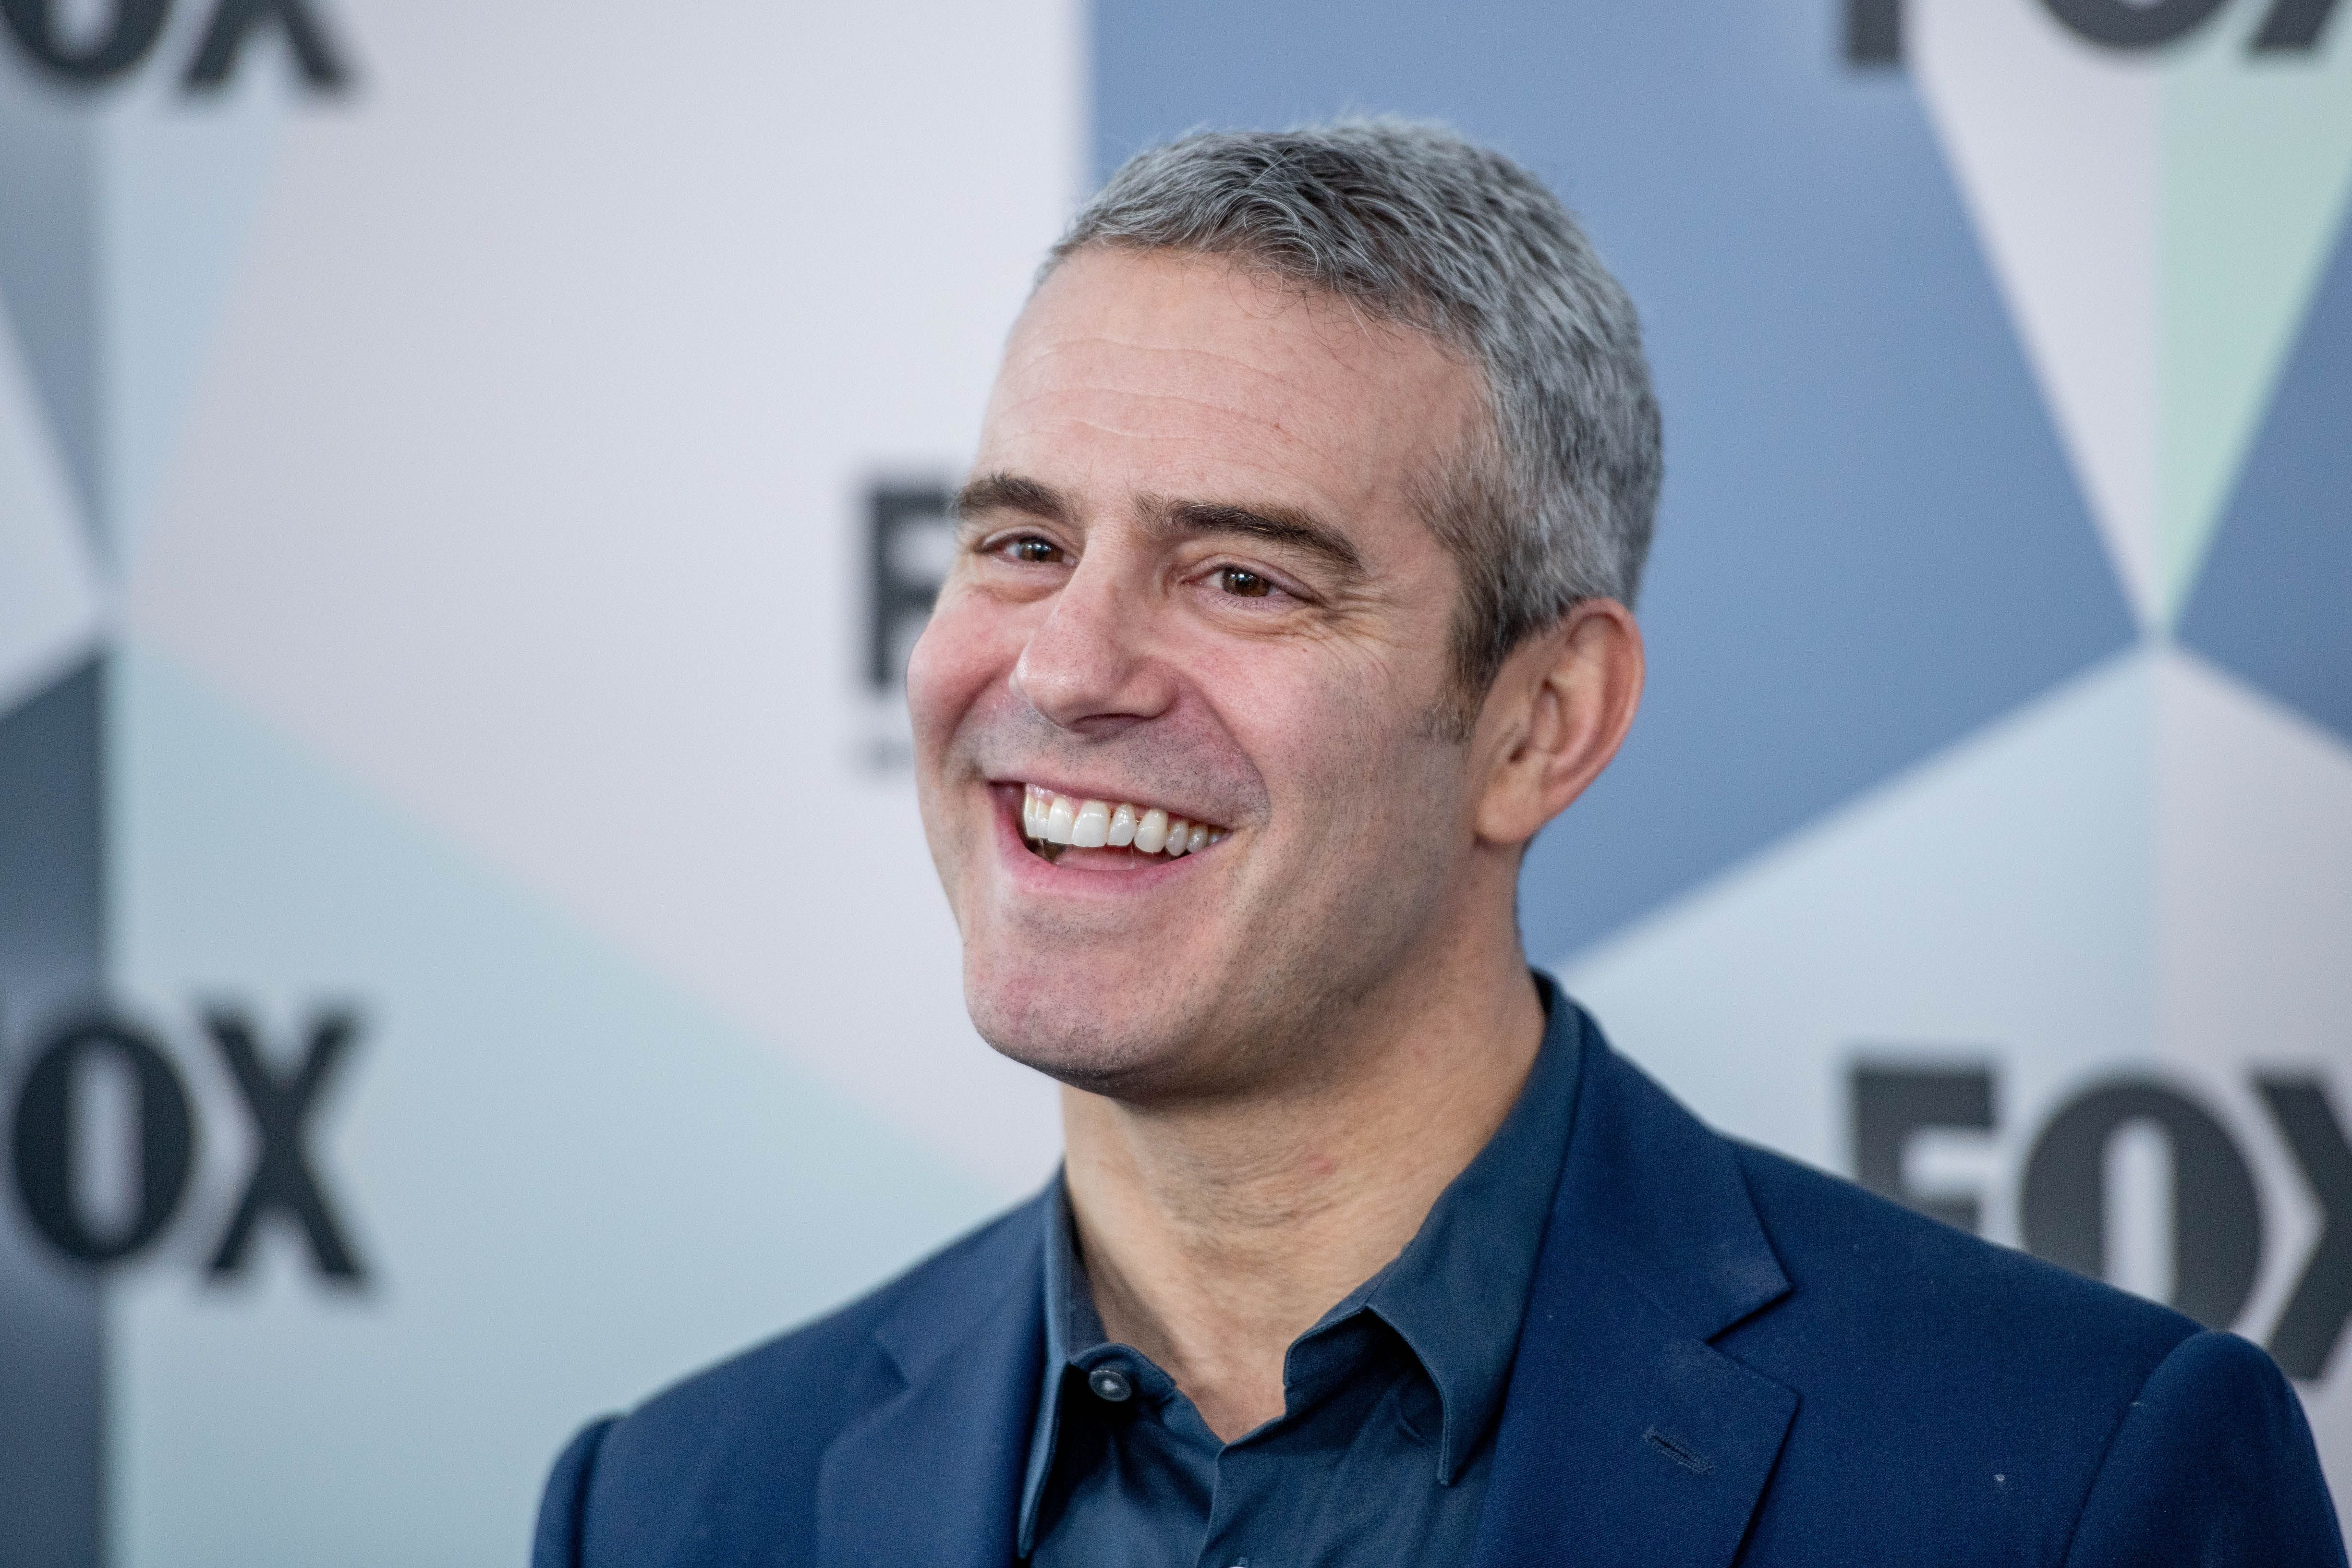 Andy Cohen during the 2018 Fox Network Upfront at Wollman Rink, Central Park on May 14, 2018. | Source: Getty Images